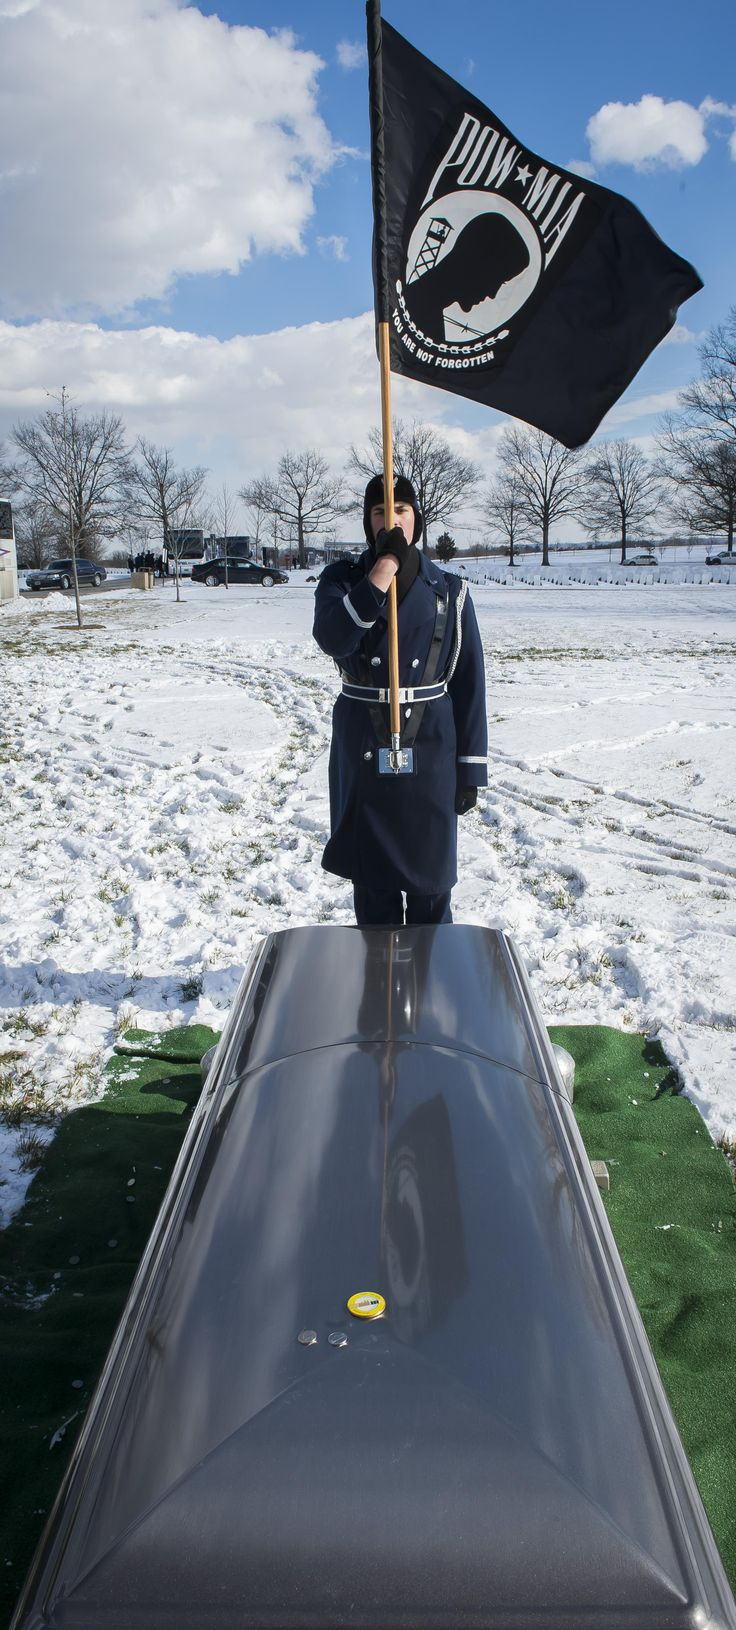 "A member of the U.S. Air Force Honor Guard stands vigil following Brig. Gen. Robinson ""Robbie"" Risner's full honors military funeral at Arlington National Cemetery, Arlington, Va., Jan. 23, 2014. Risner was the Air Force's 20th Ace and and survived seven and a half years of captivity as a Prisoner of War (POW) in Hoa Lo Prison, a.k.a the Hanoi Hilton. during the Vietnam War. (U.S. Air Force photo/Jim Varhegyi)"